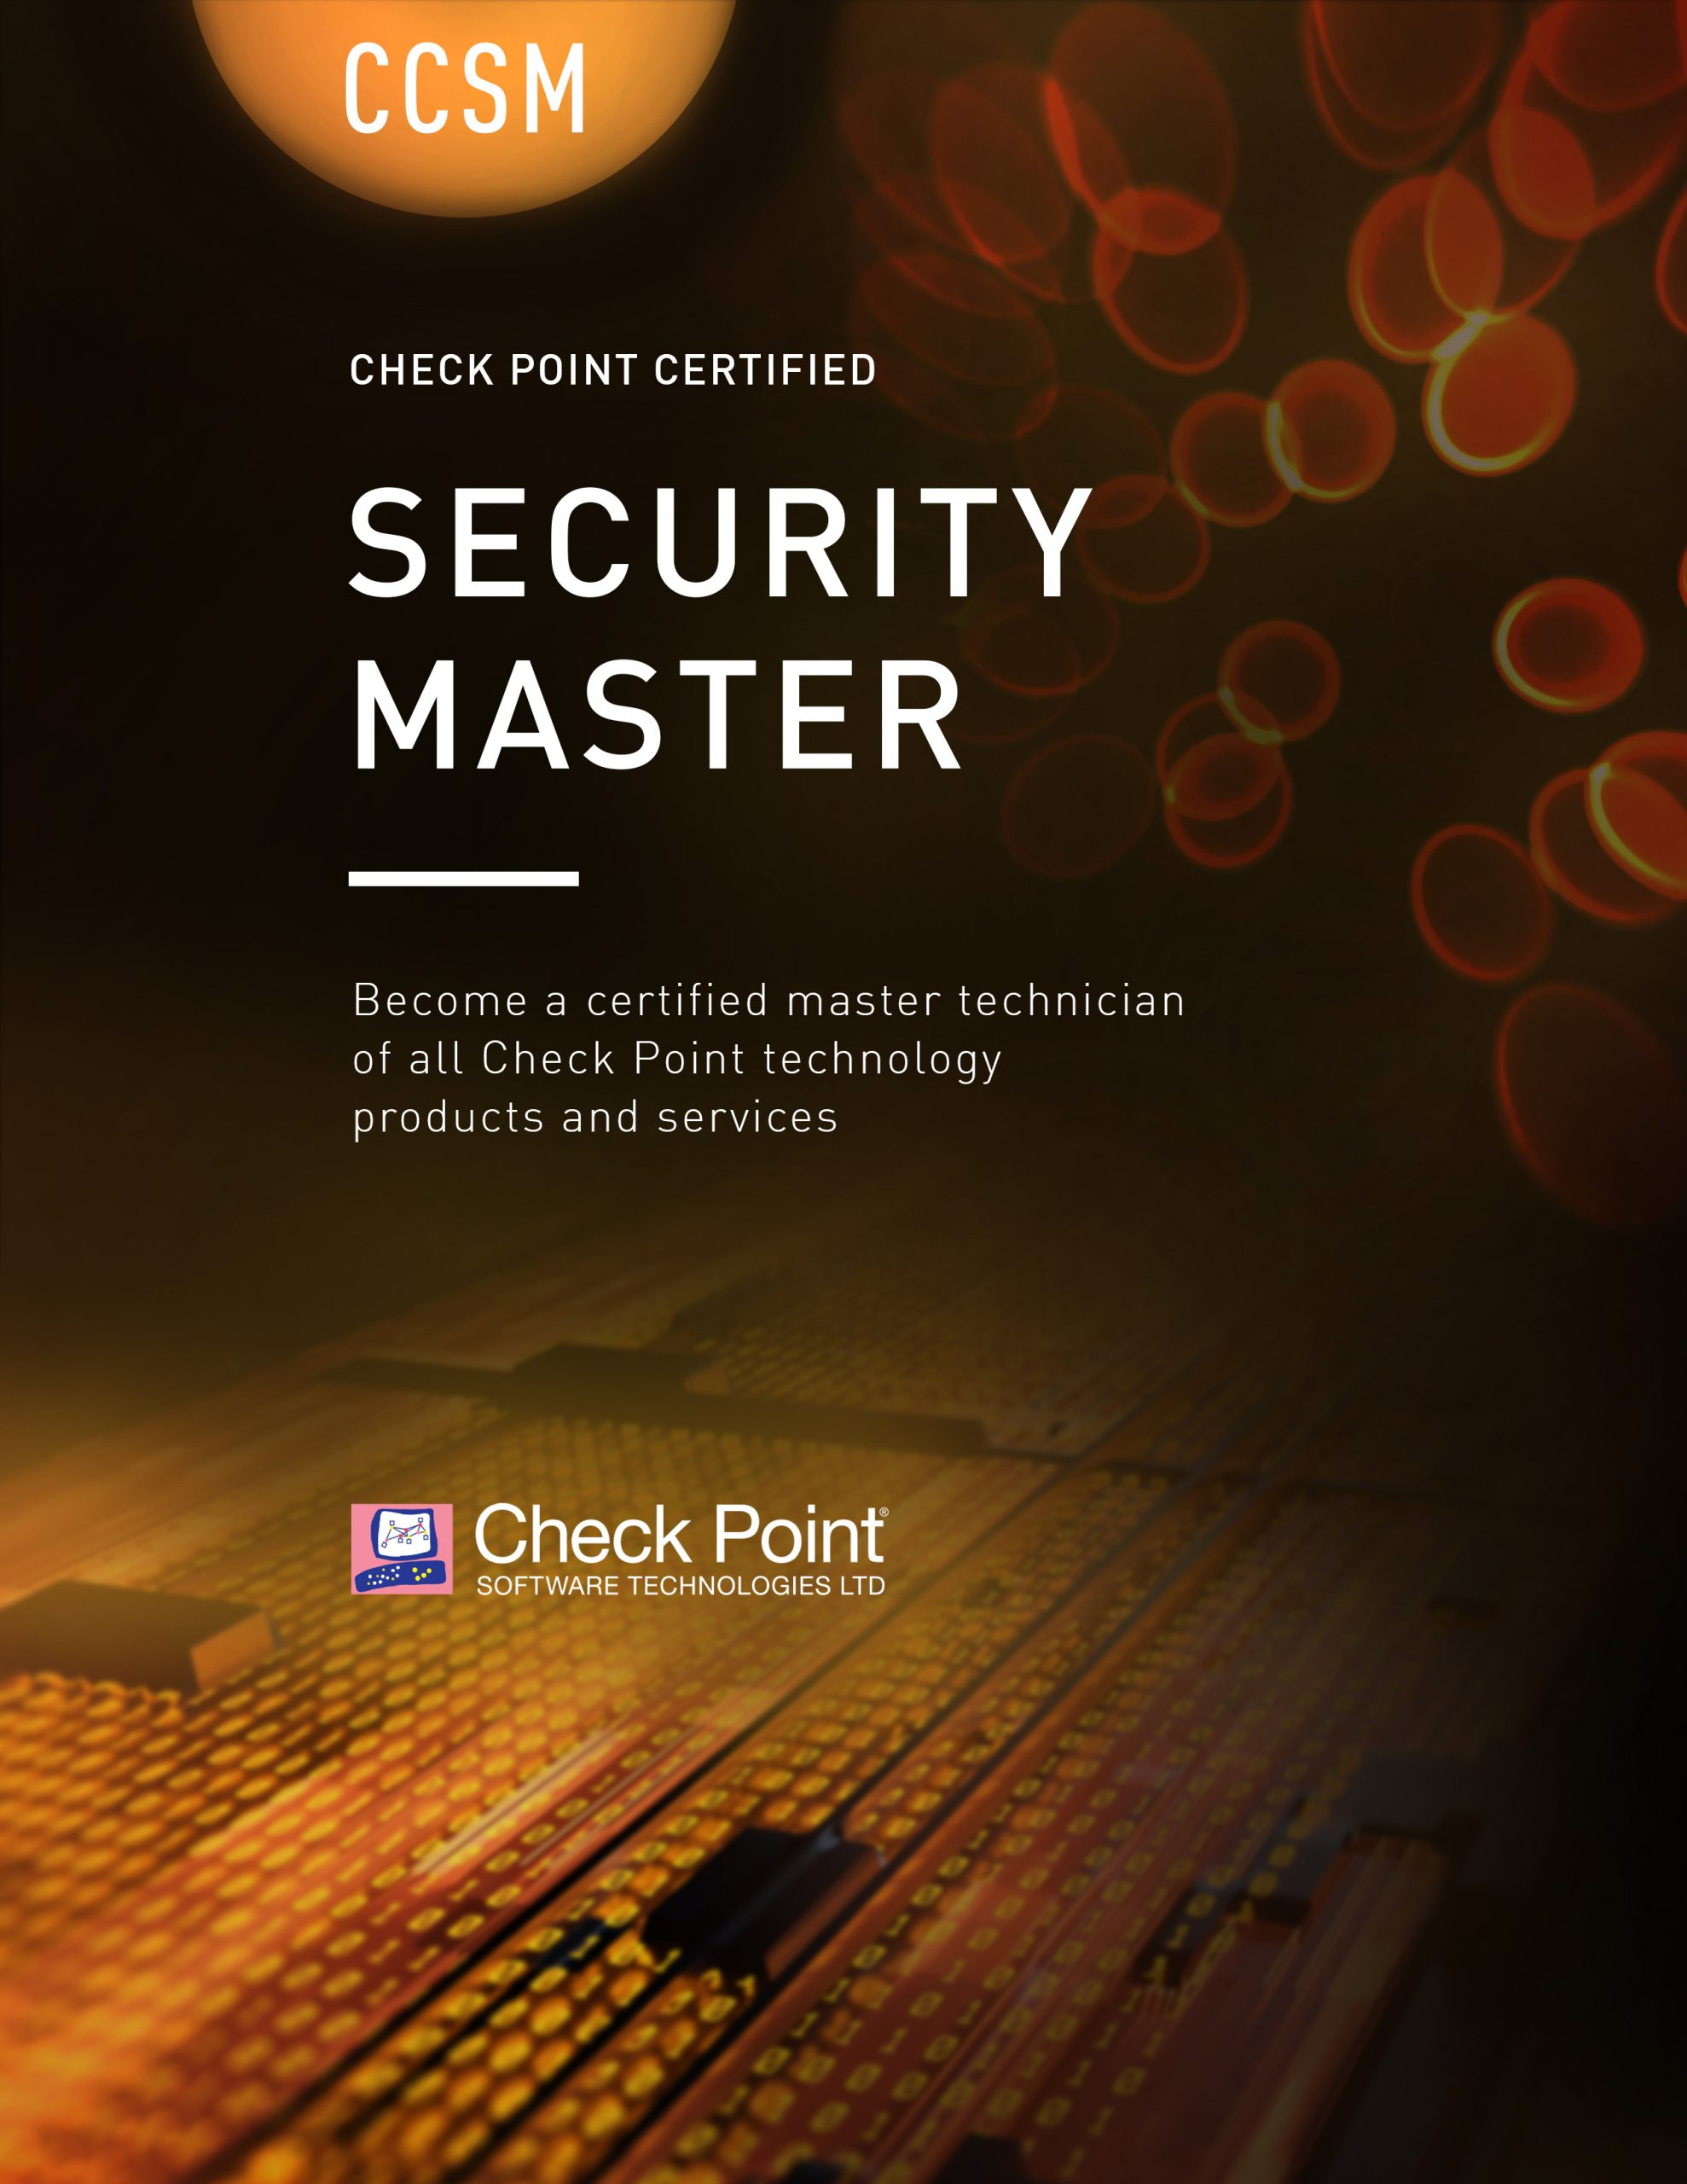 CCSM – Check Point Security Master